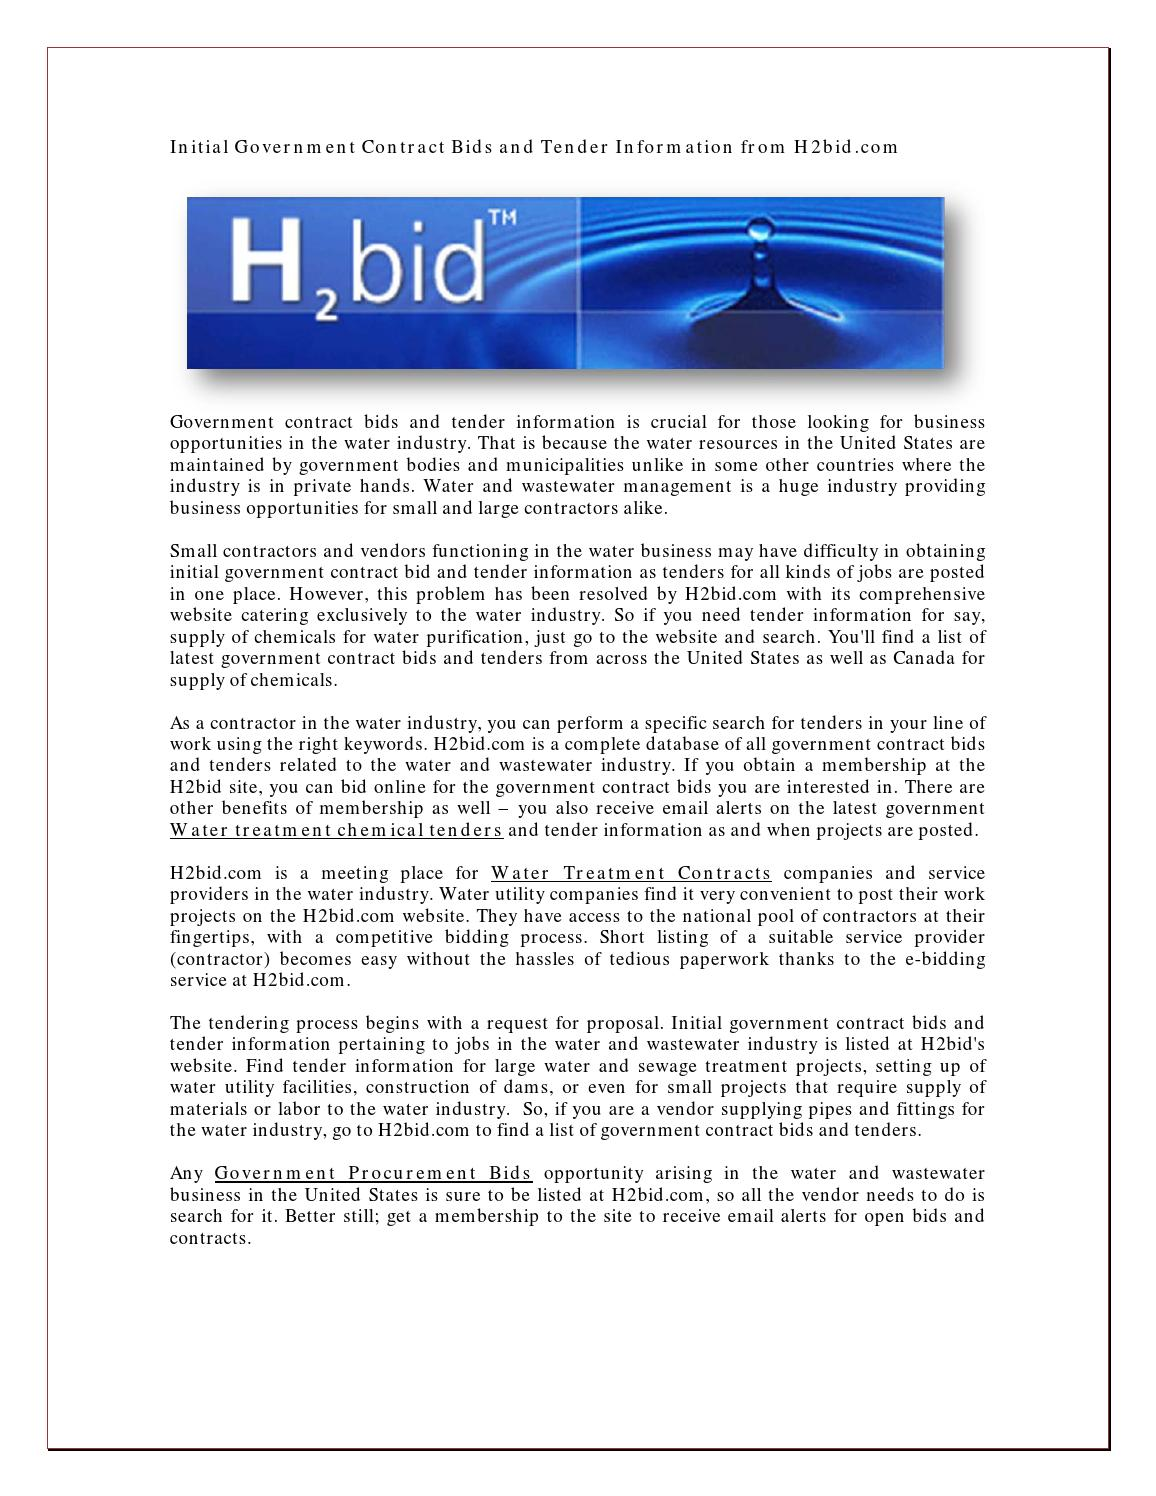 Initial Government Contract Bids And Tender Information From H2bid By Waterbid Issuu